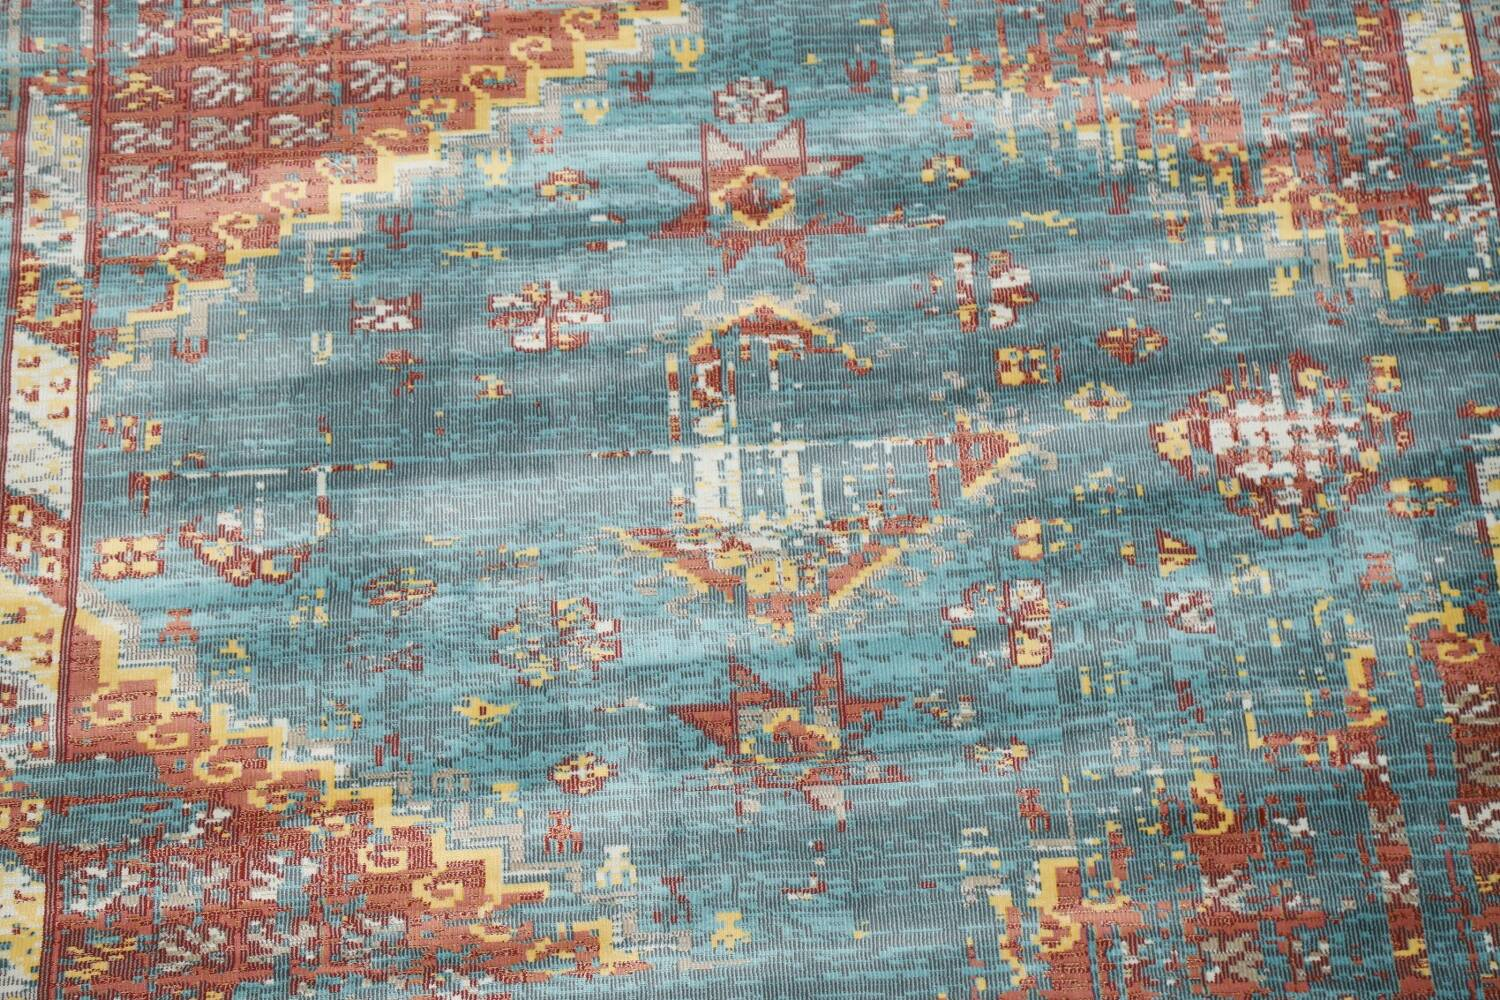 Vintage Style Distressed Heat-Set Area Rugs image 43